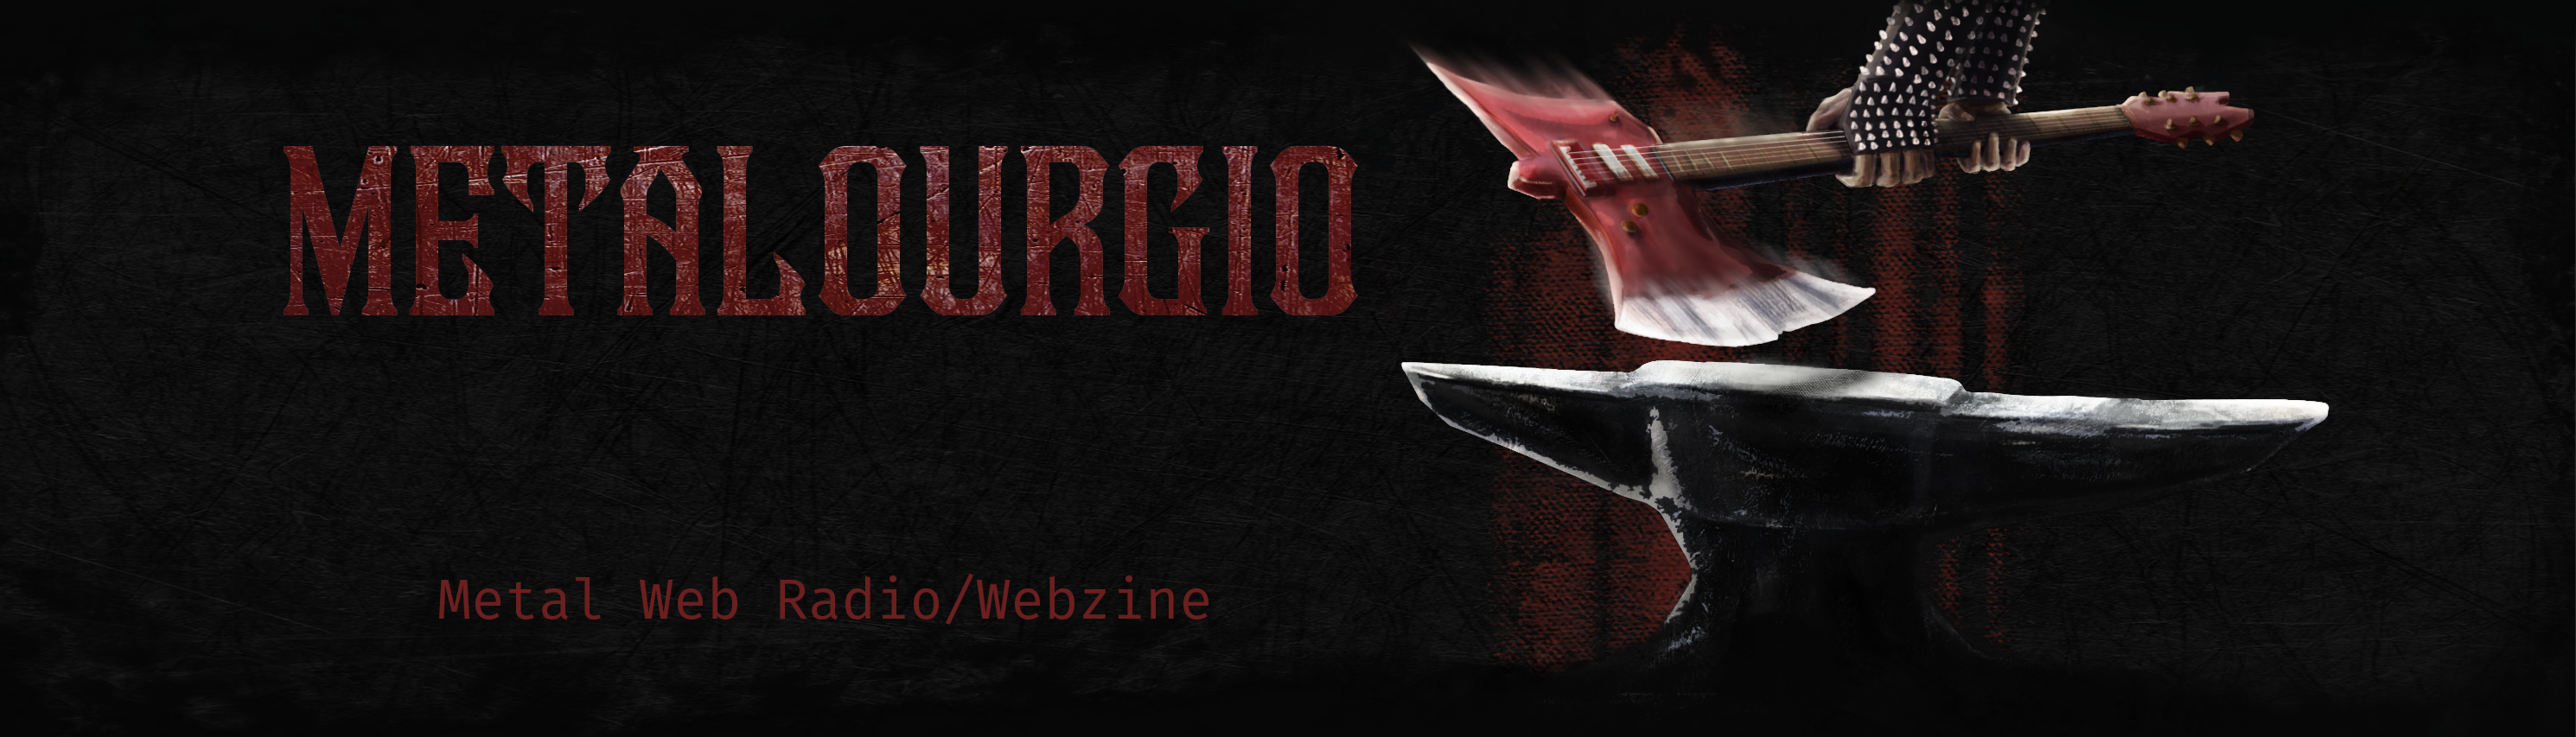 METALOURGIO – Metal Web Radio/Webzine